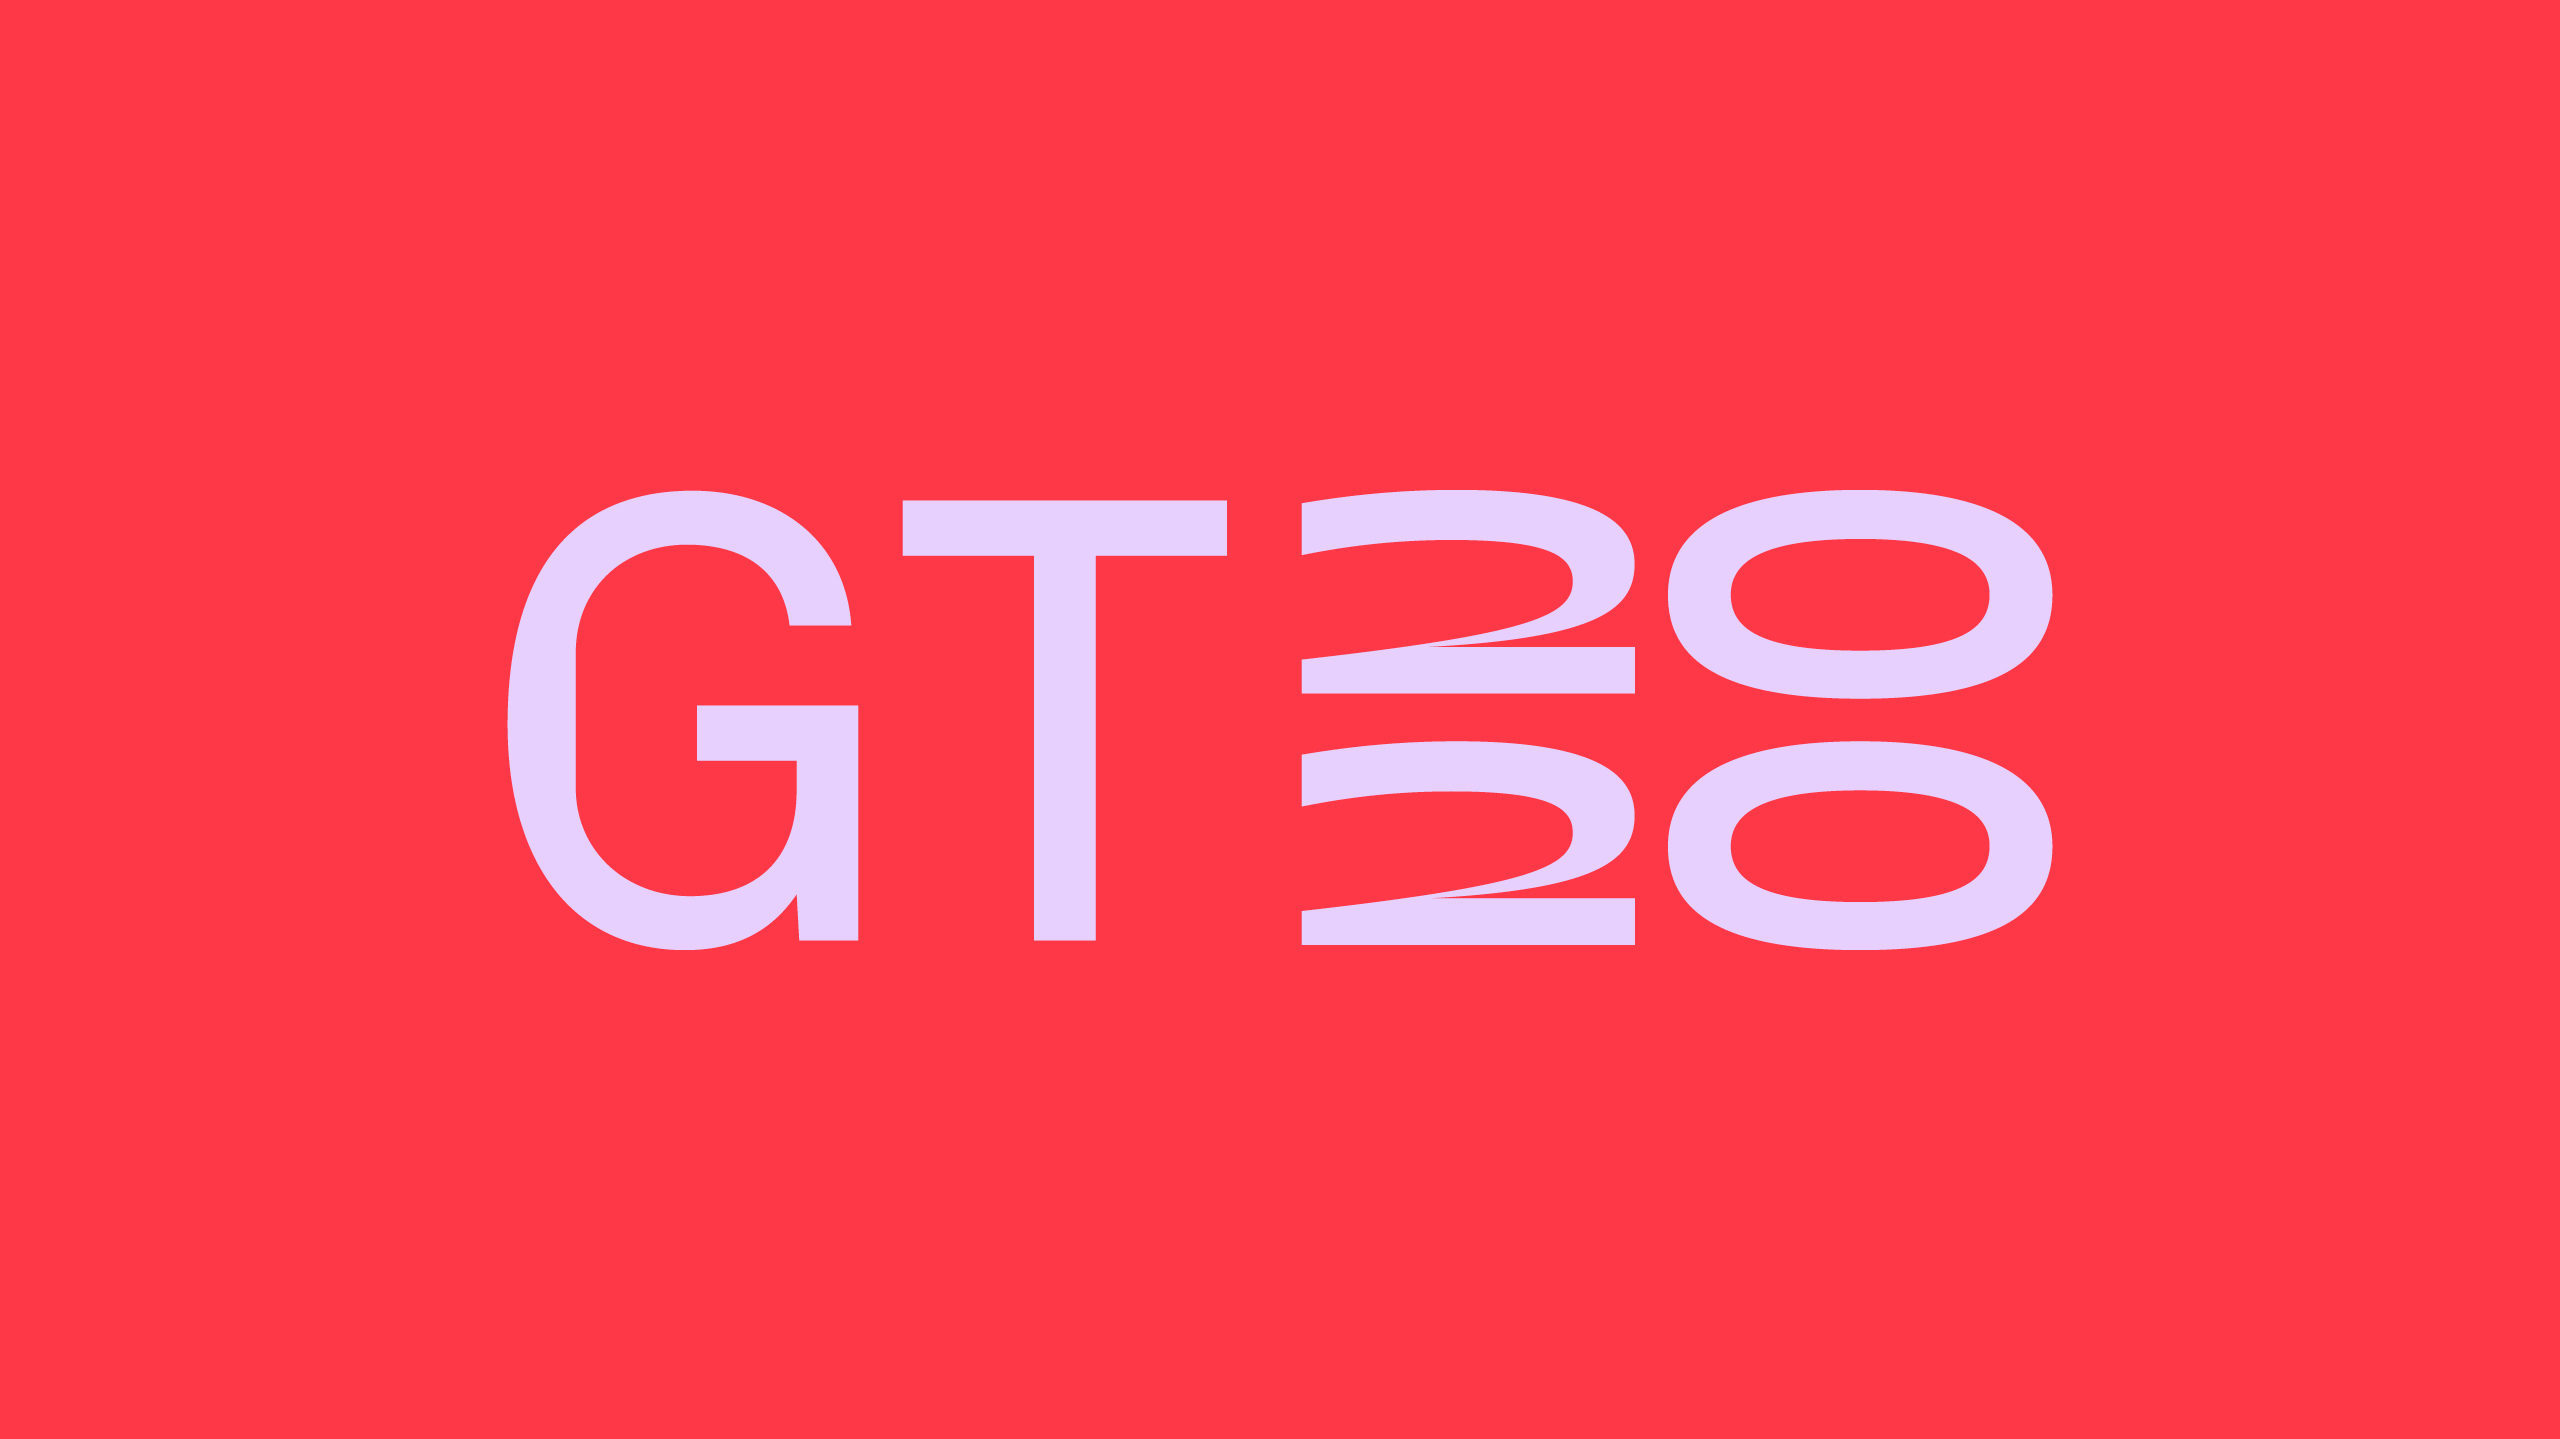 Grad Thesis 2020 logo on red